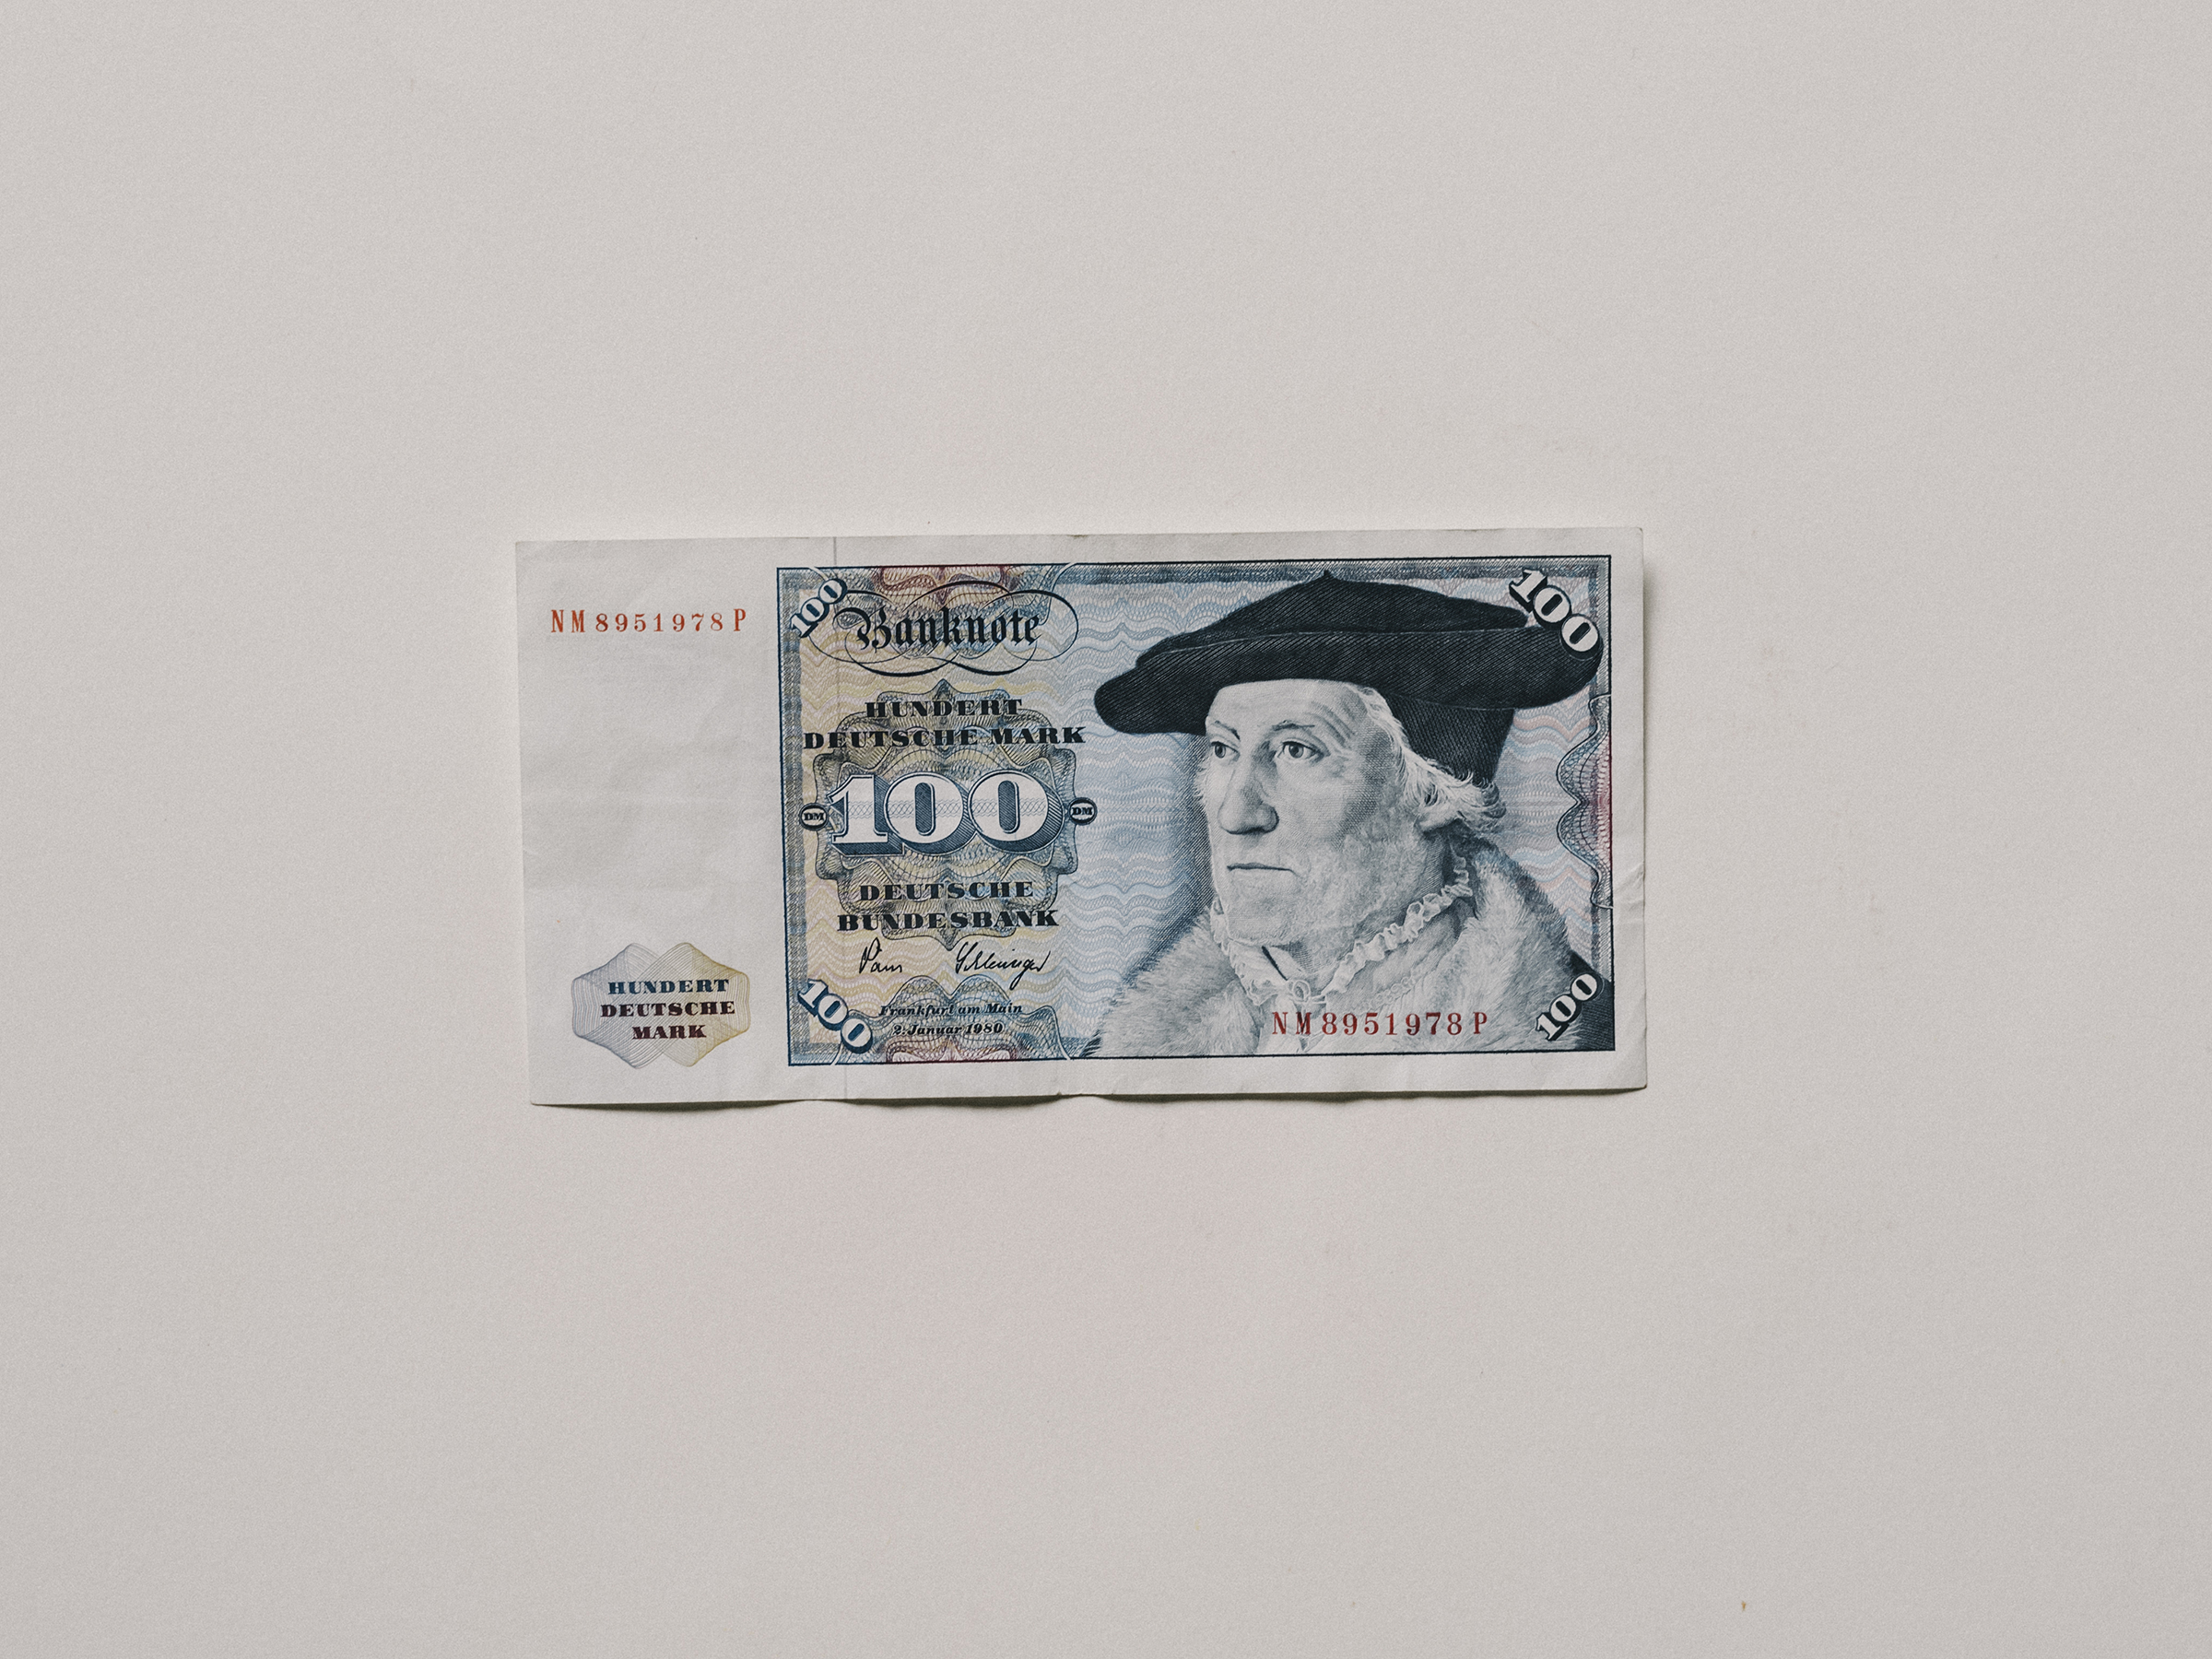 A 100 Deutsche Mark bill.